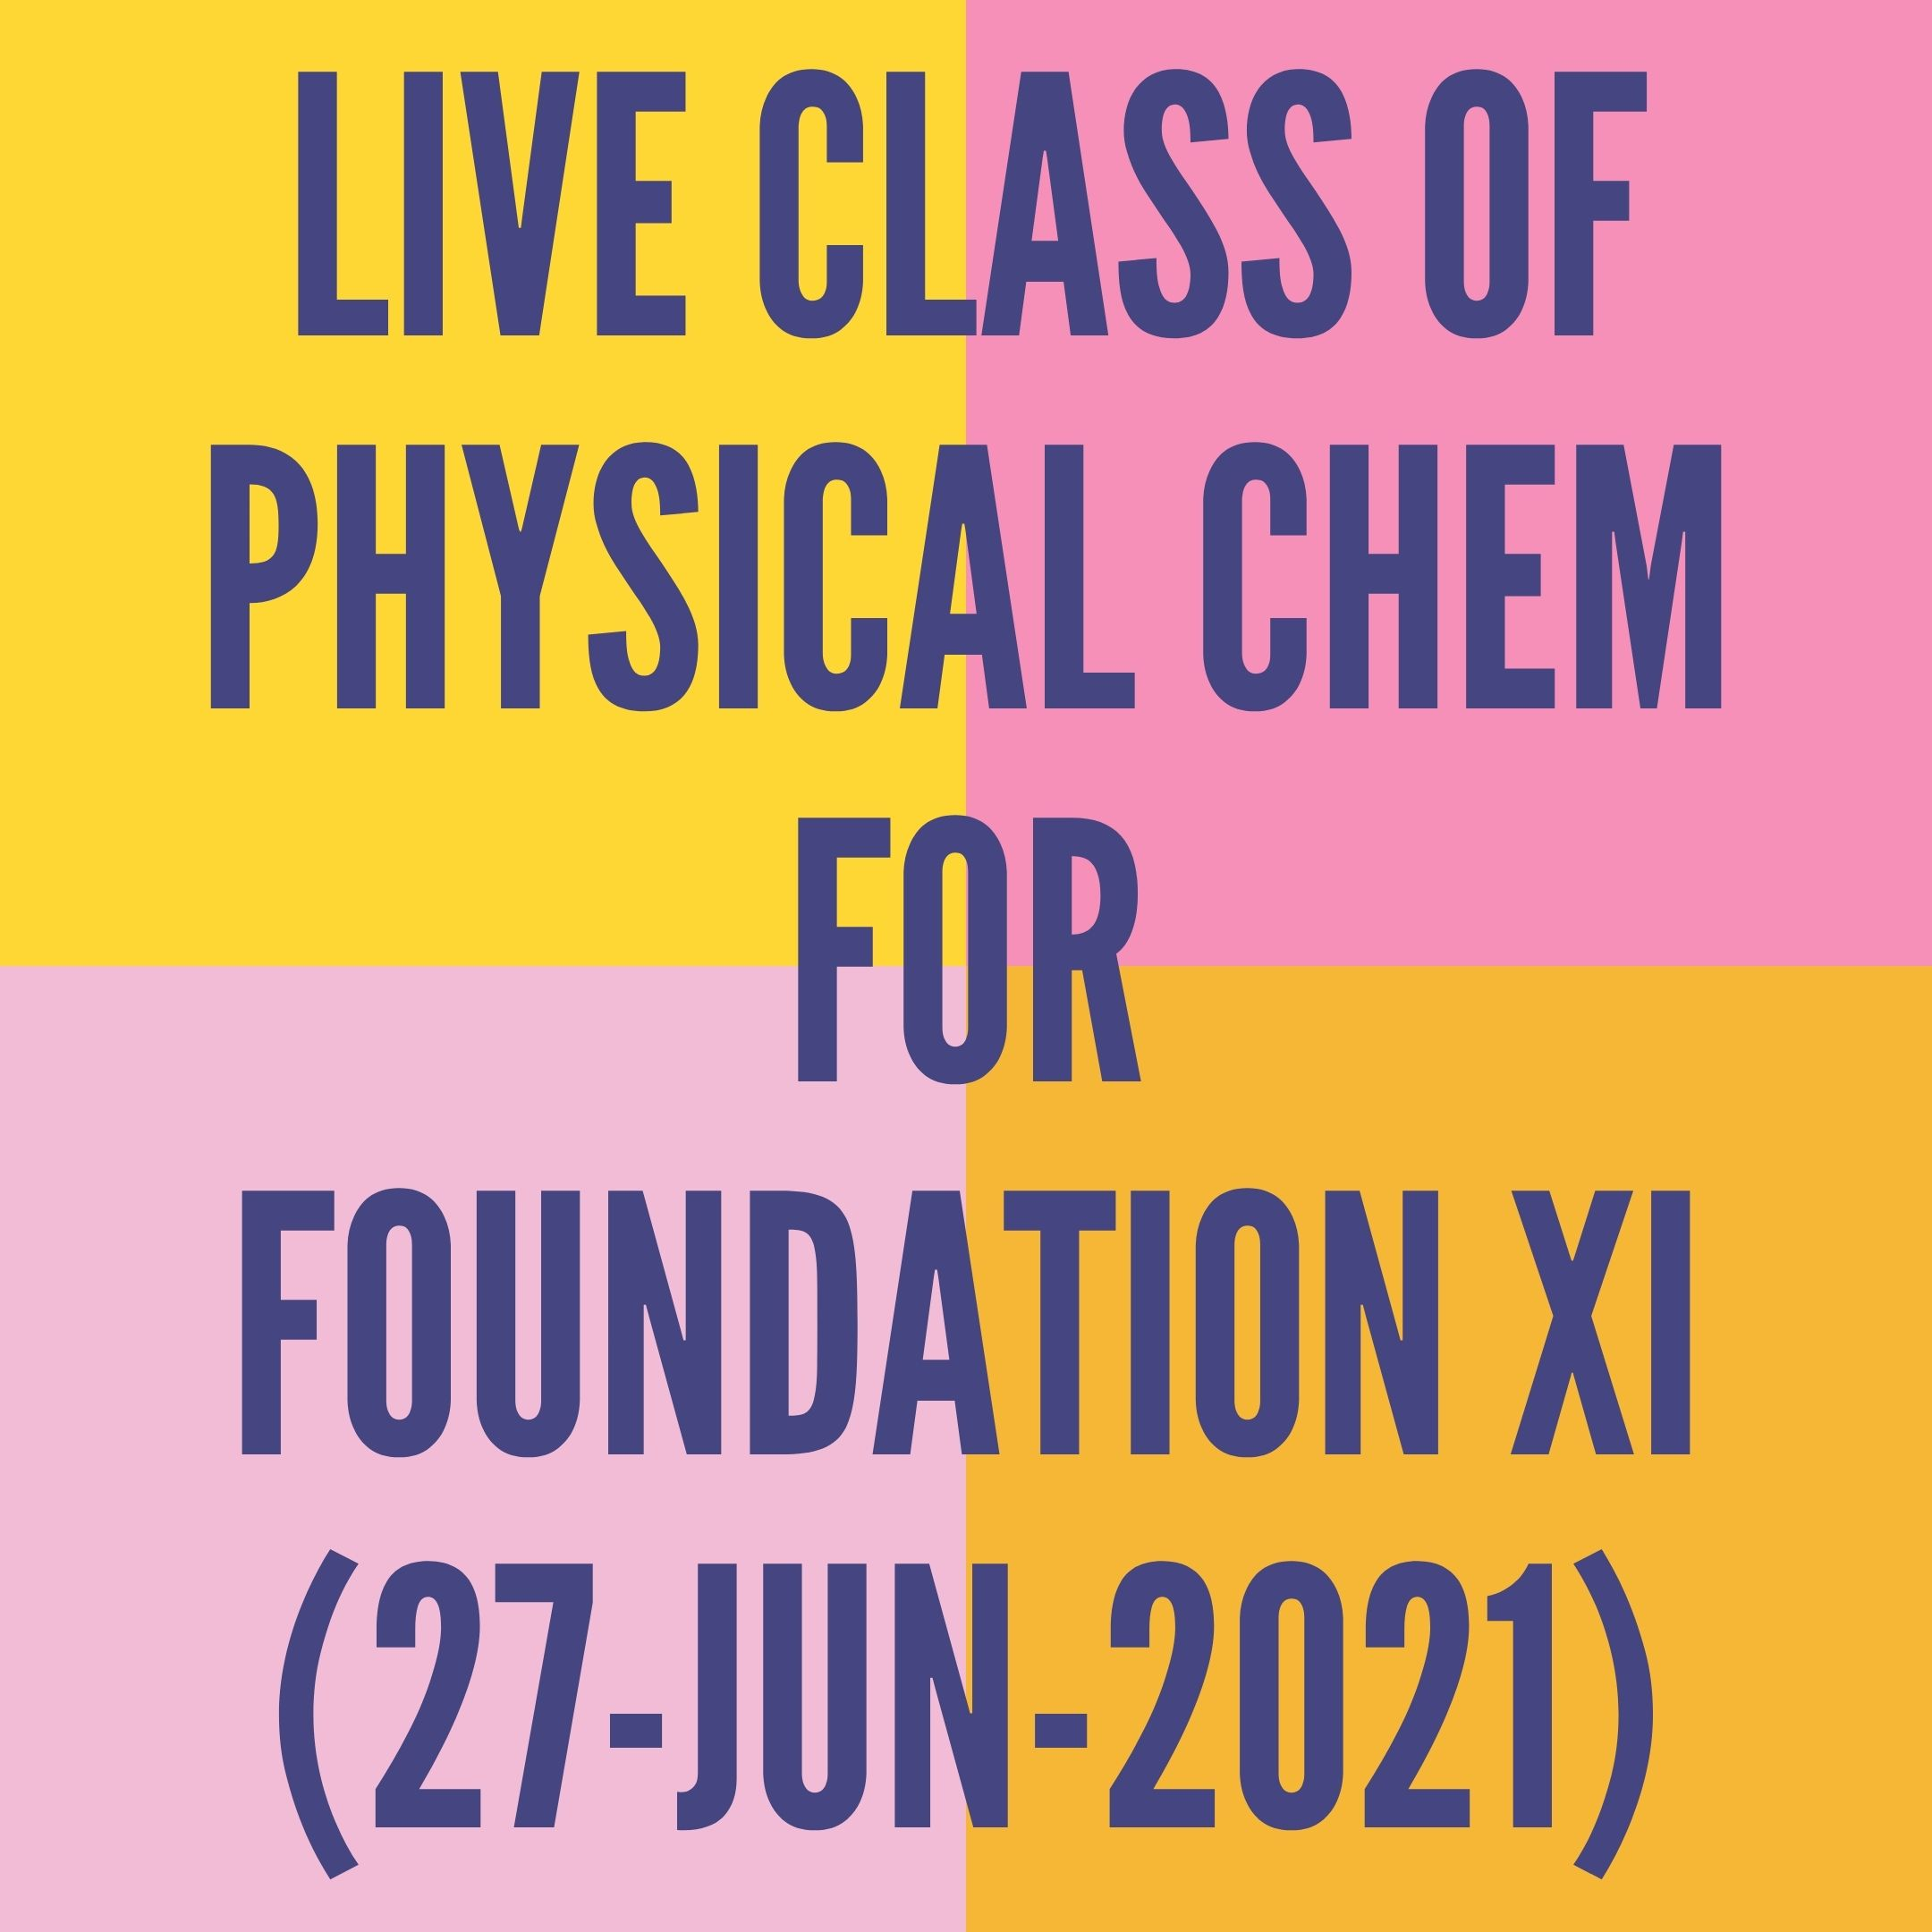 LIVE CLASS OF PHYSICAL CHEMISTRY FOR FOUNDATION XI (27-JUN-2021) CONCENTRATION OF SOLUTIONS